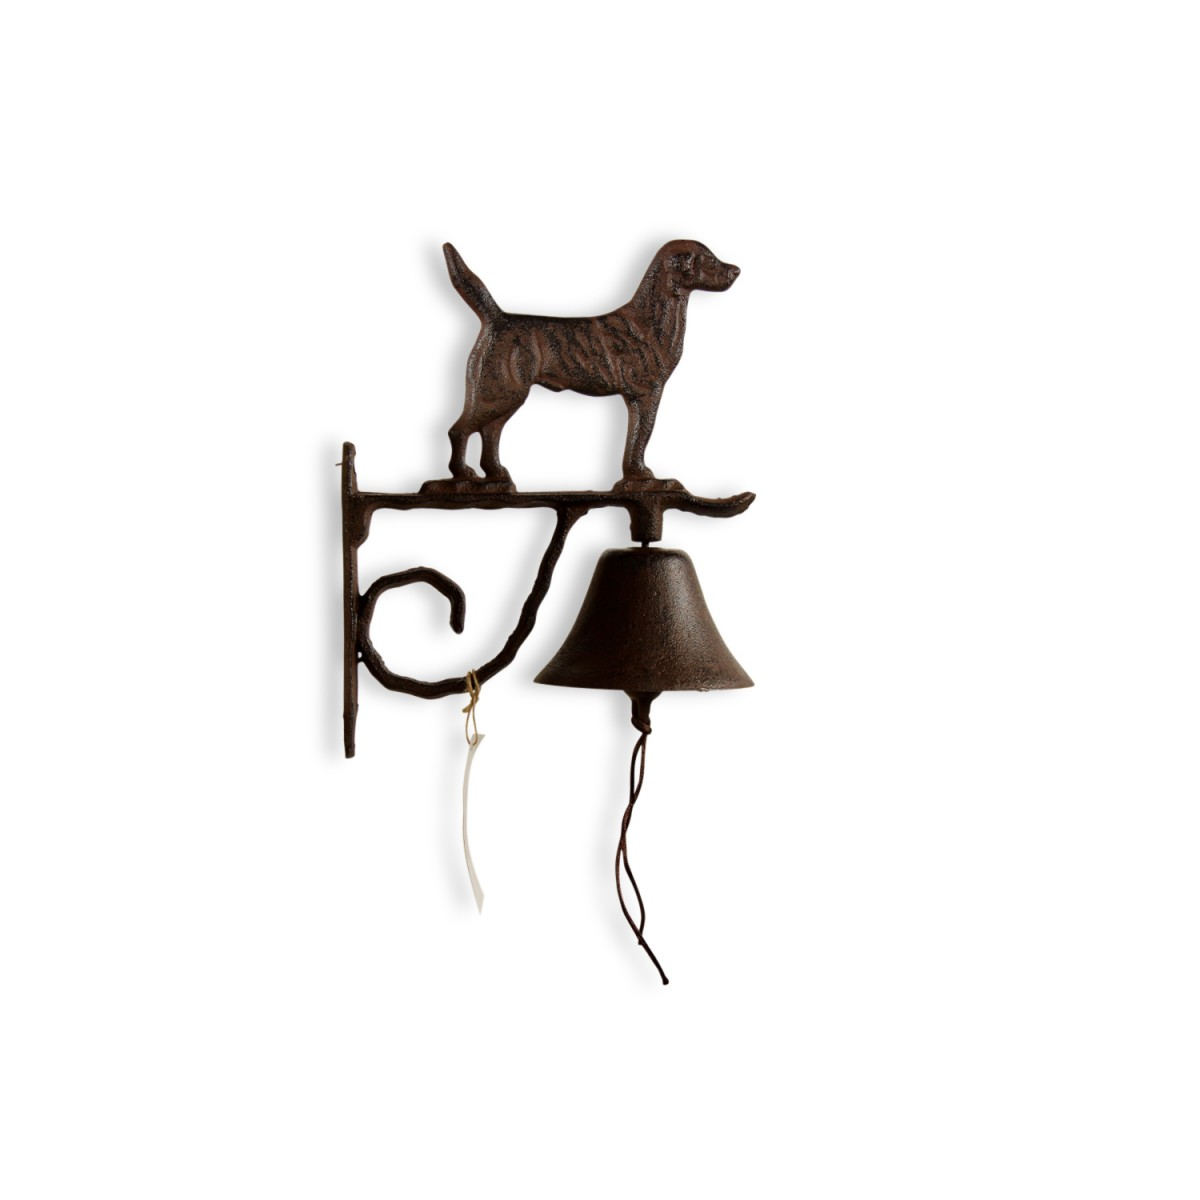 Cloche Chien Fonte Marron 21x11x26cm